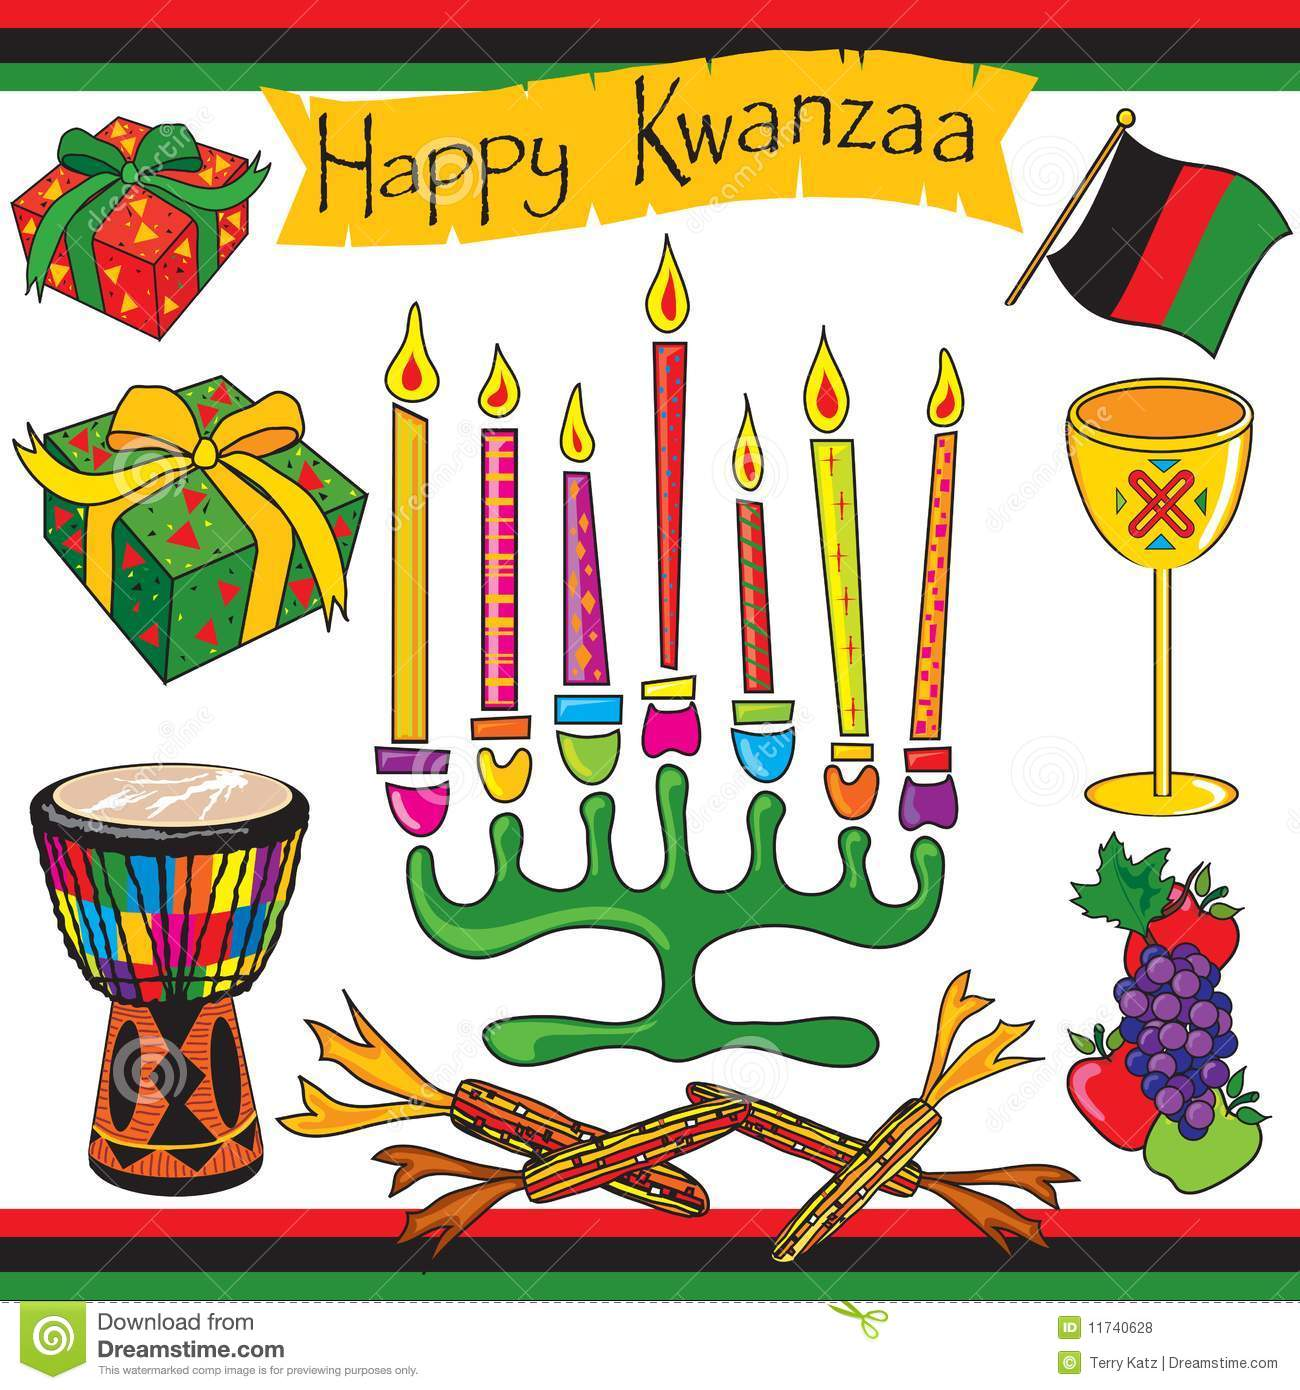 Happy Kwanzaa clip art and icons